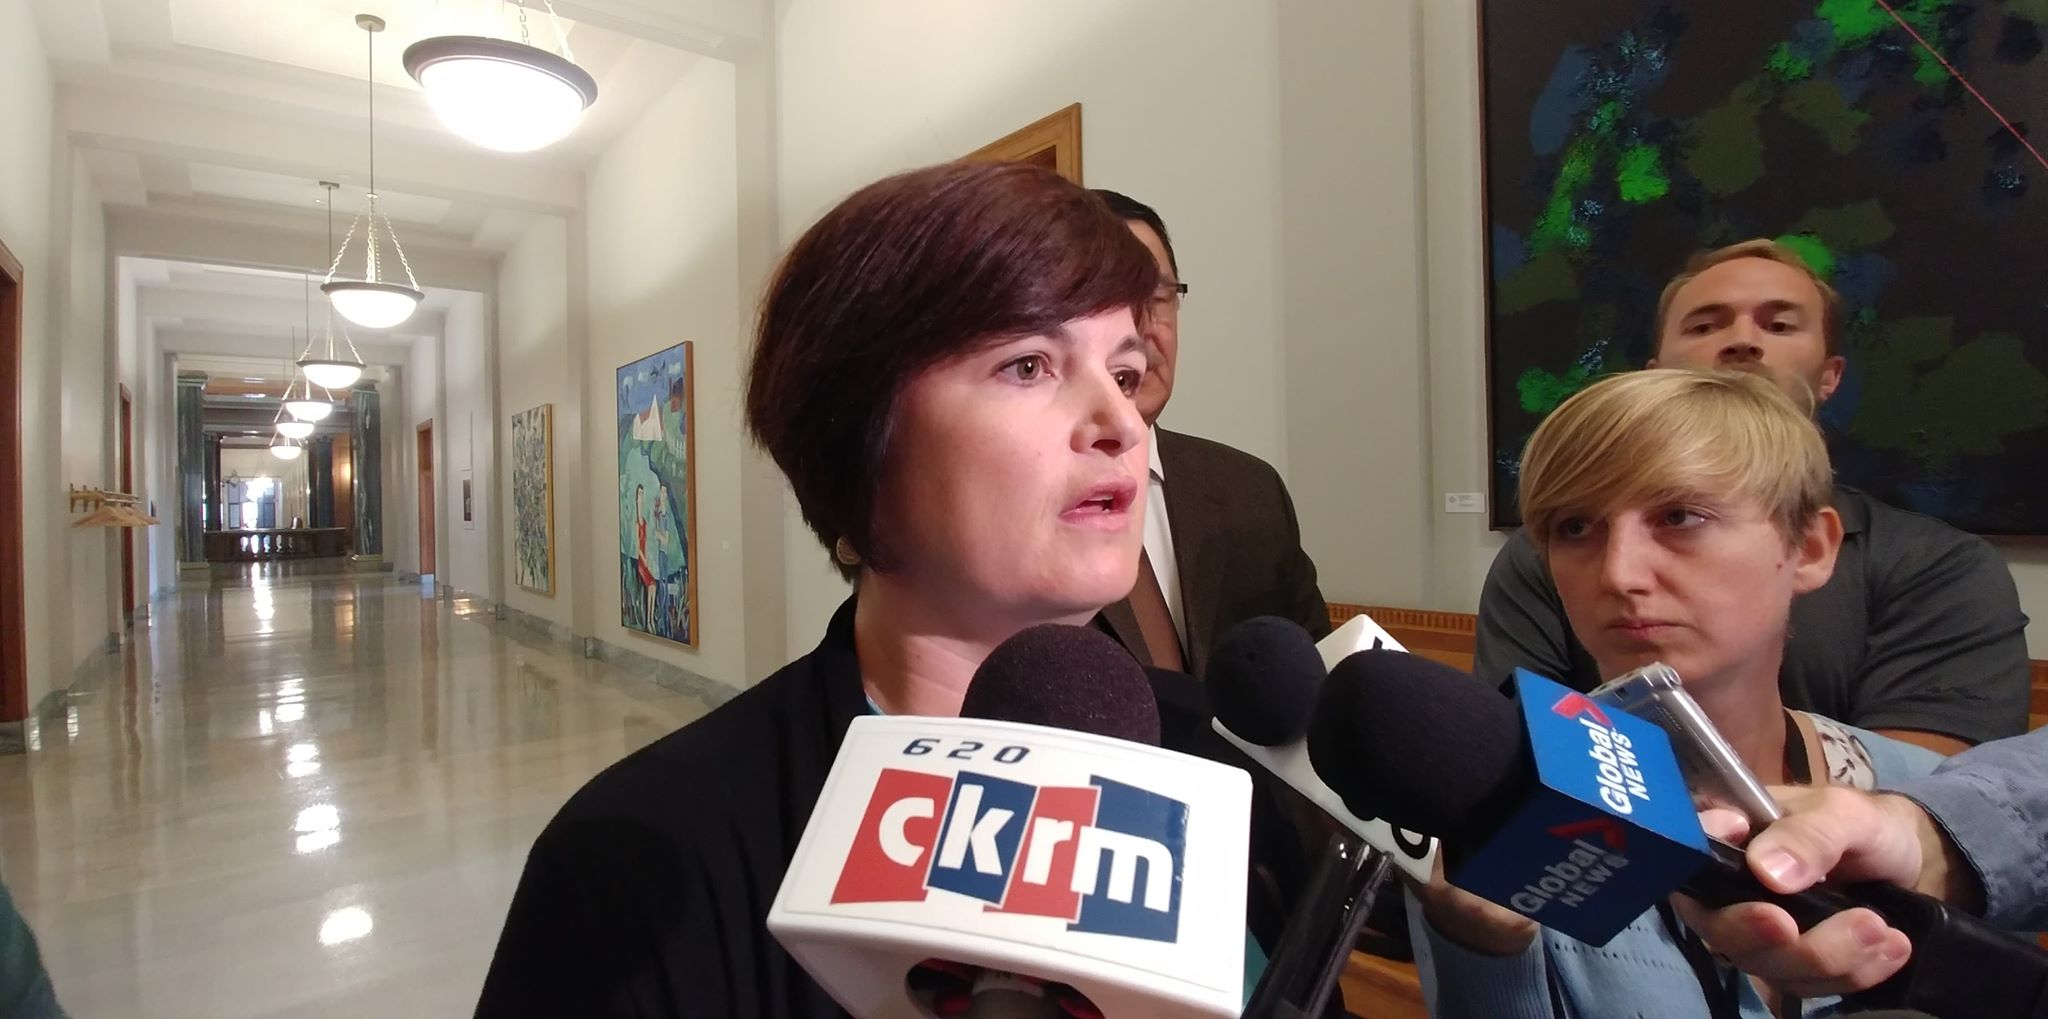 NDP calling on provincial government to improve foster care system